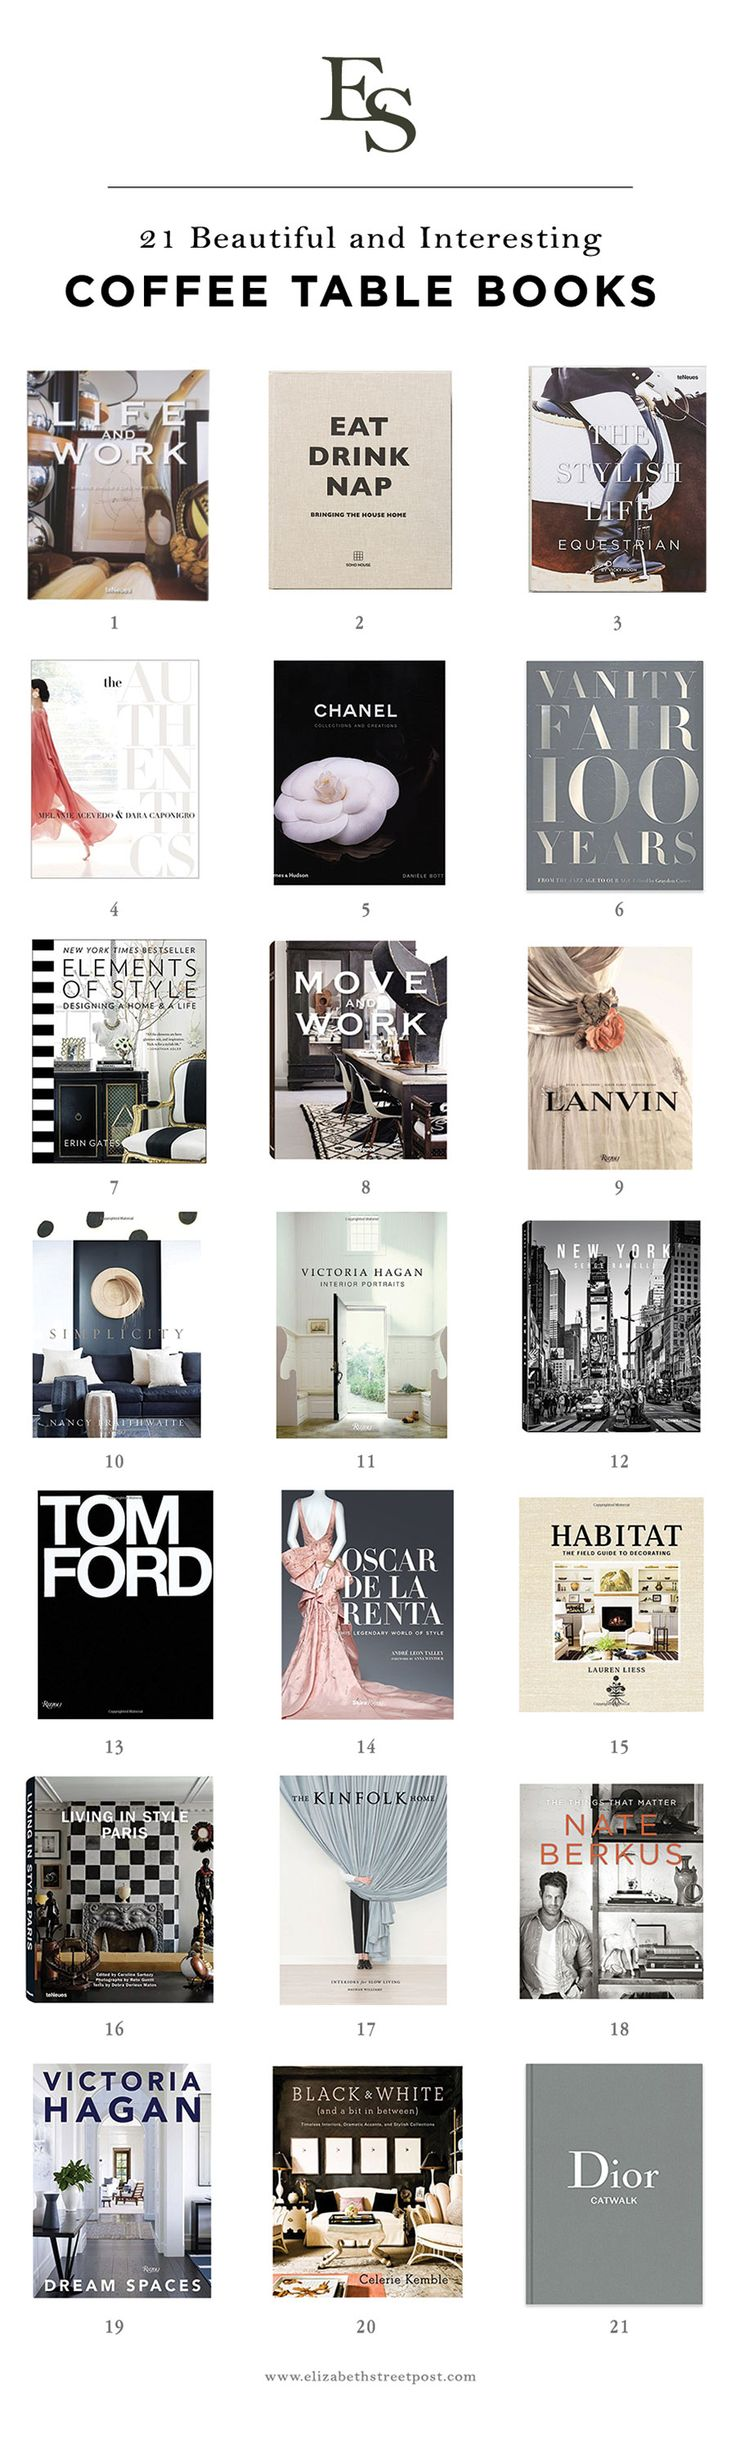 the best coffee table books for styling a home // Elizabeth Street Post blog